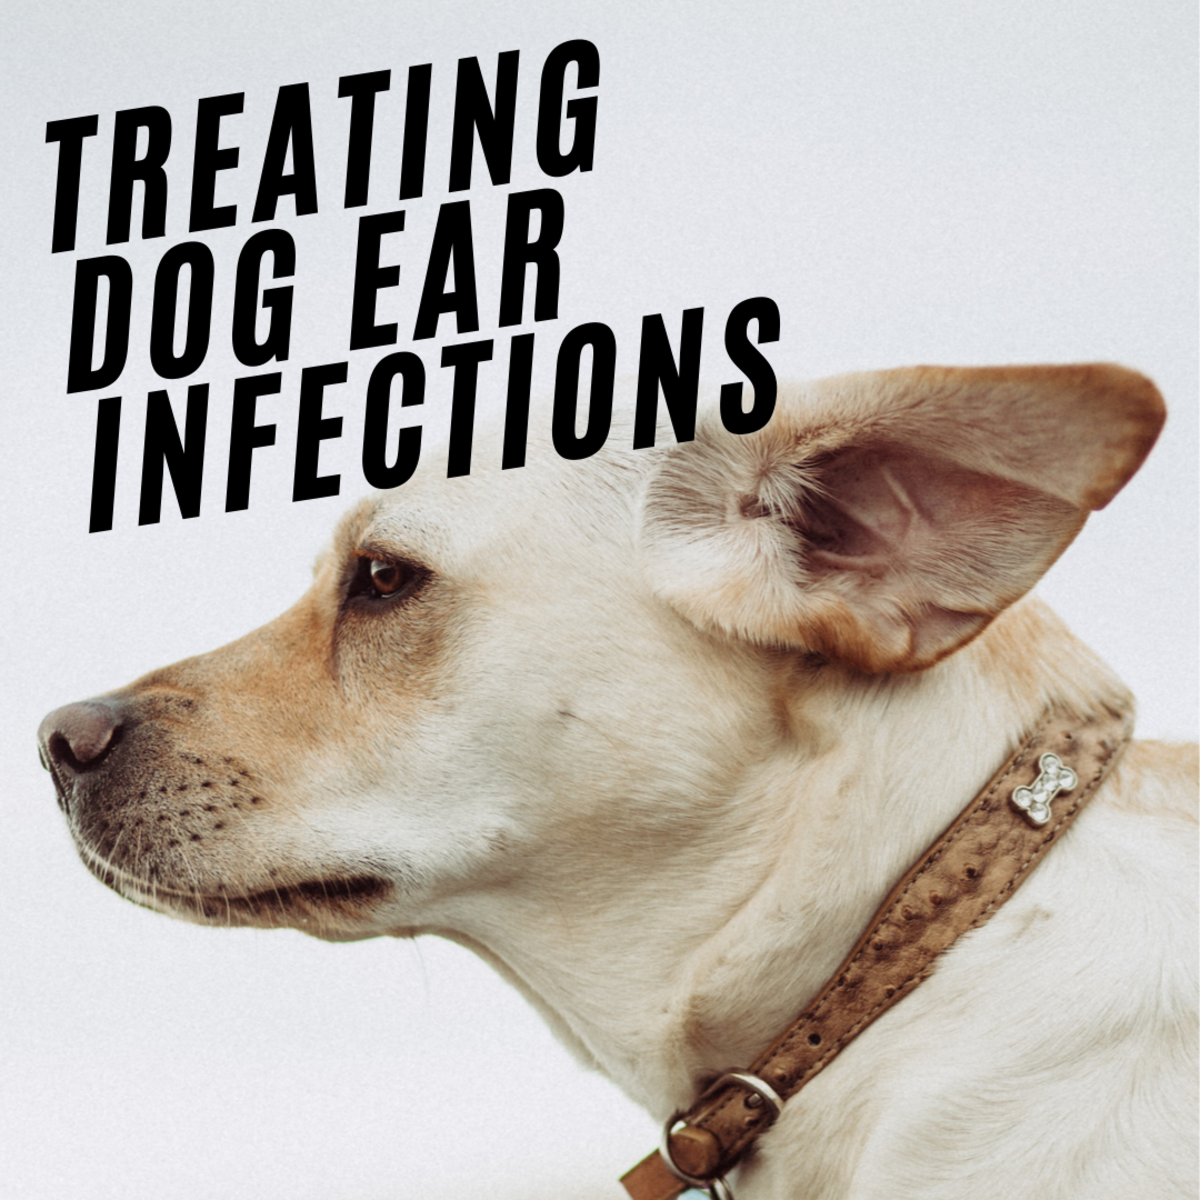 Treating Dog Ear Infections